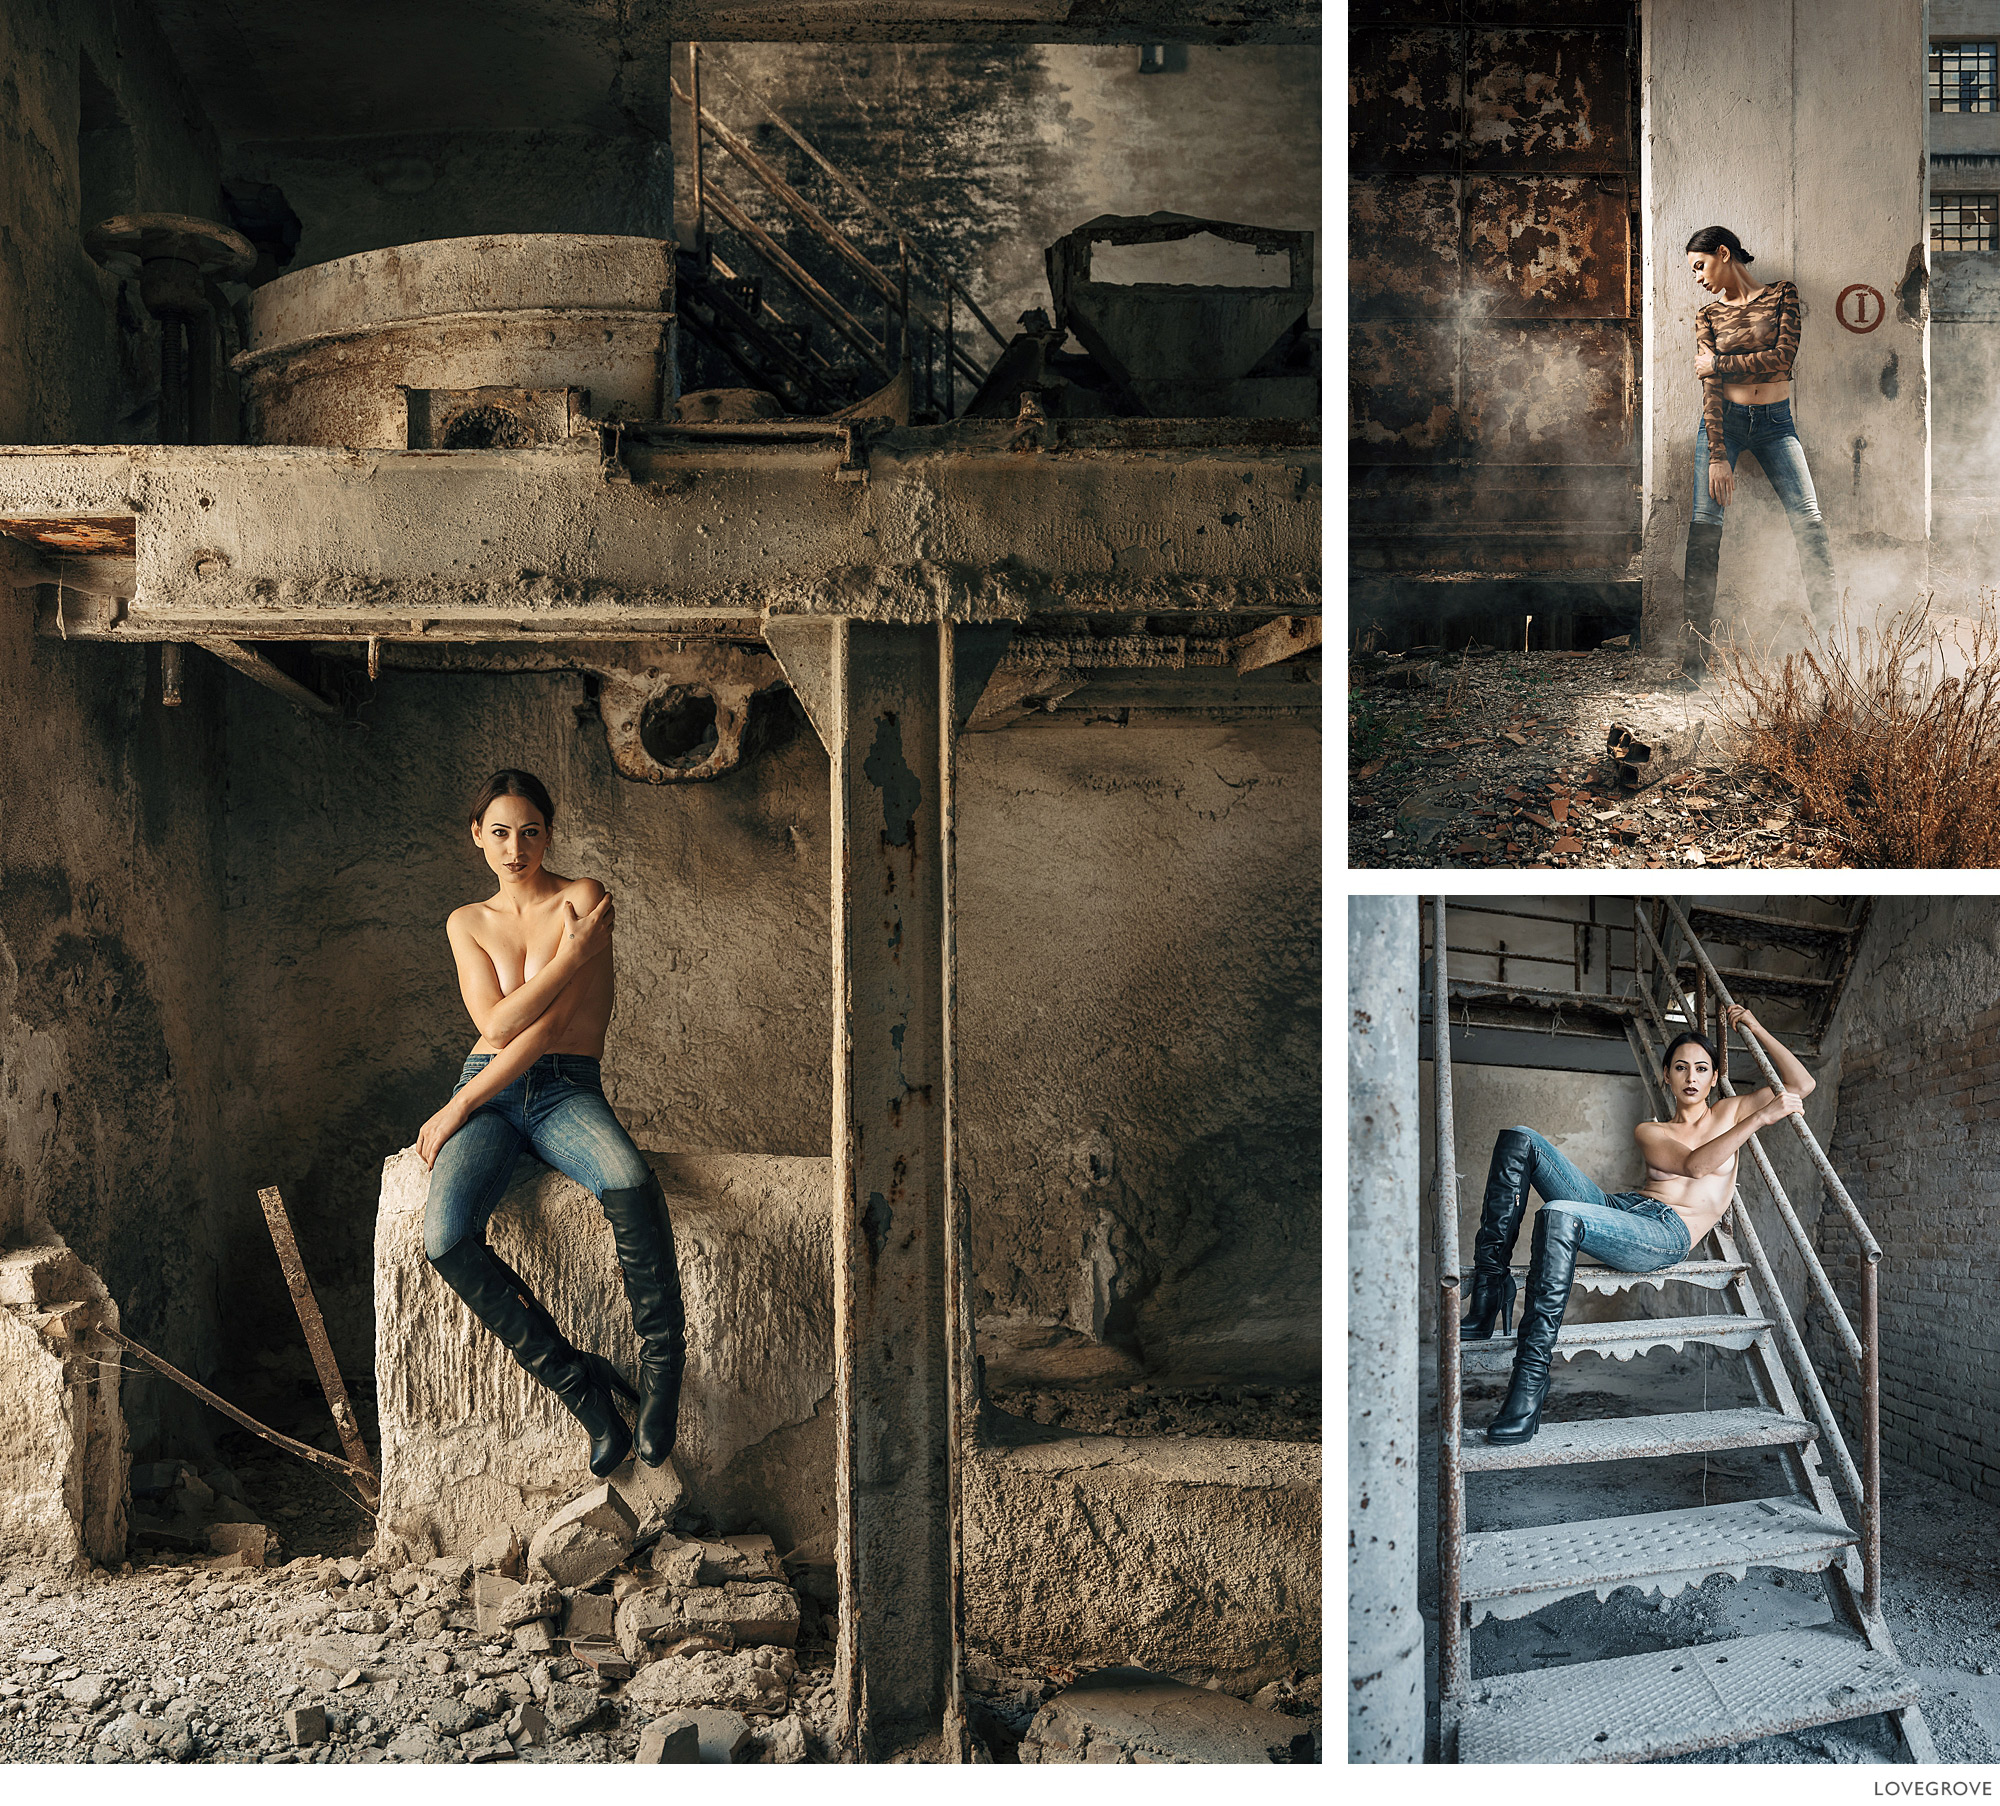 Martina in a derelict manufacturing plant.